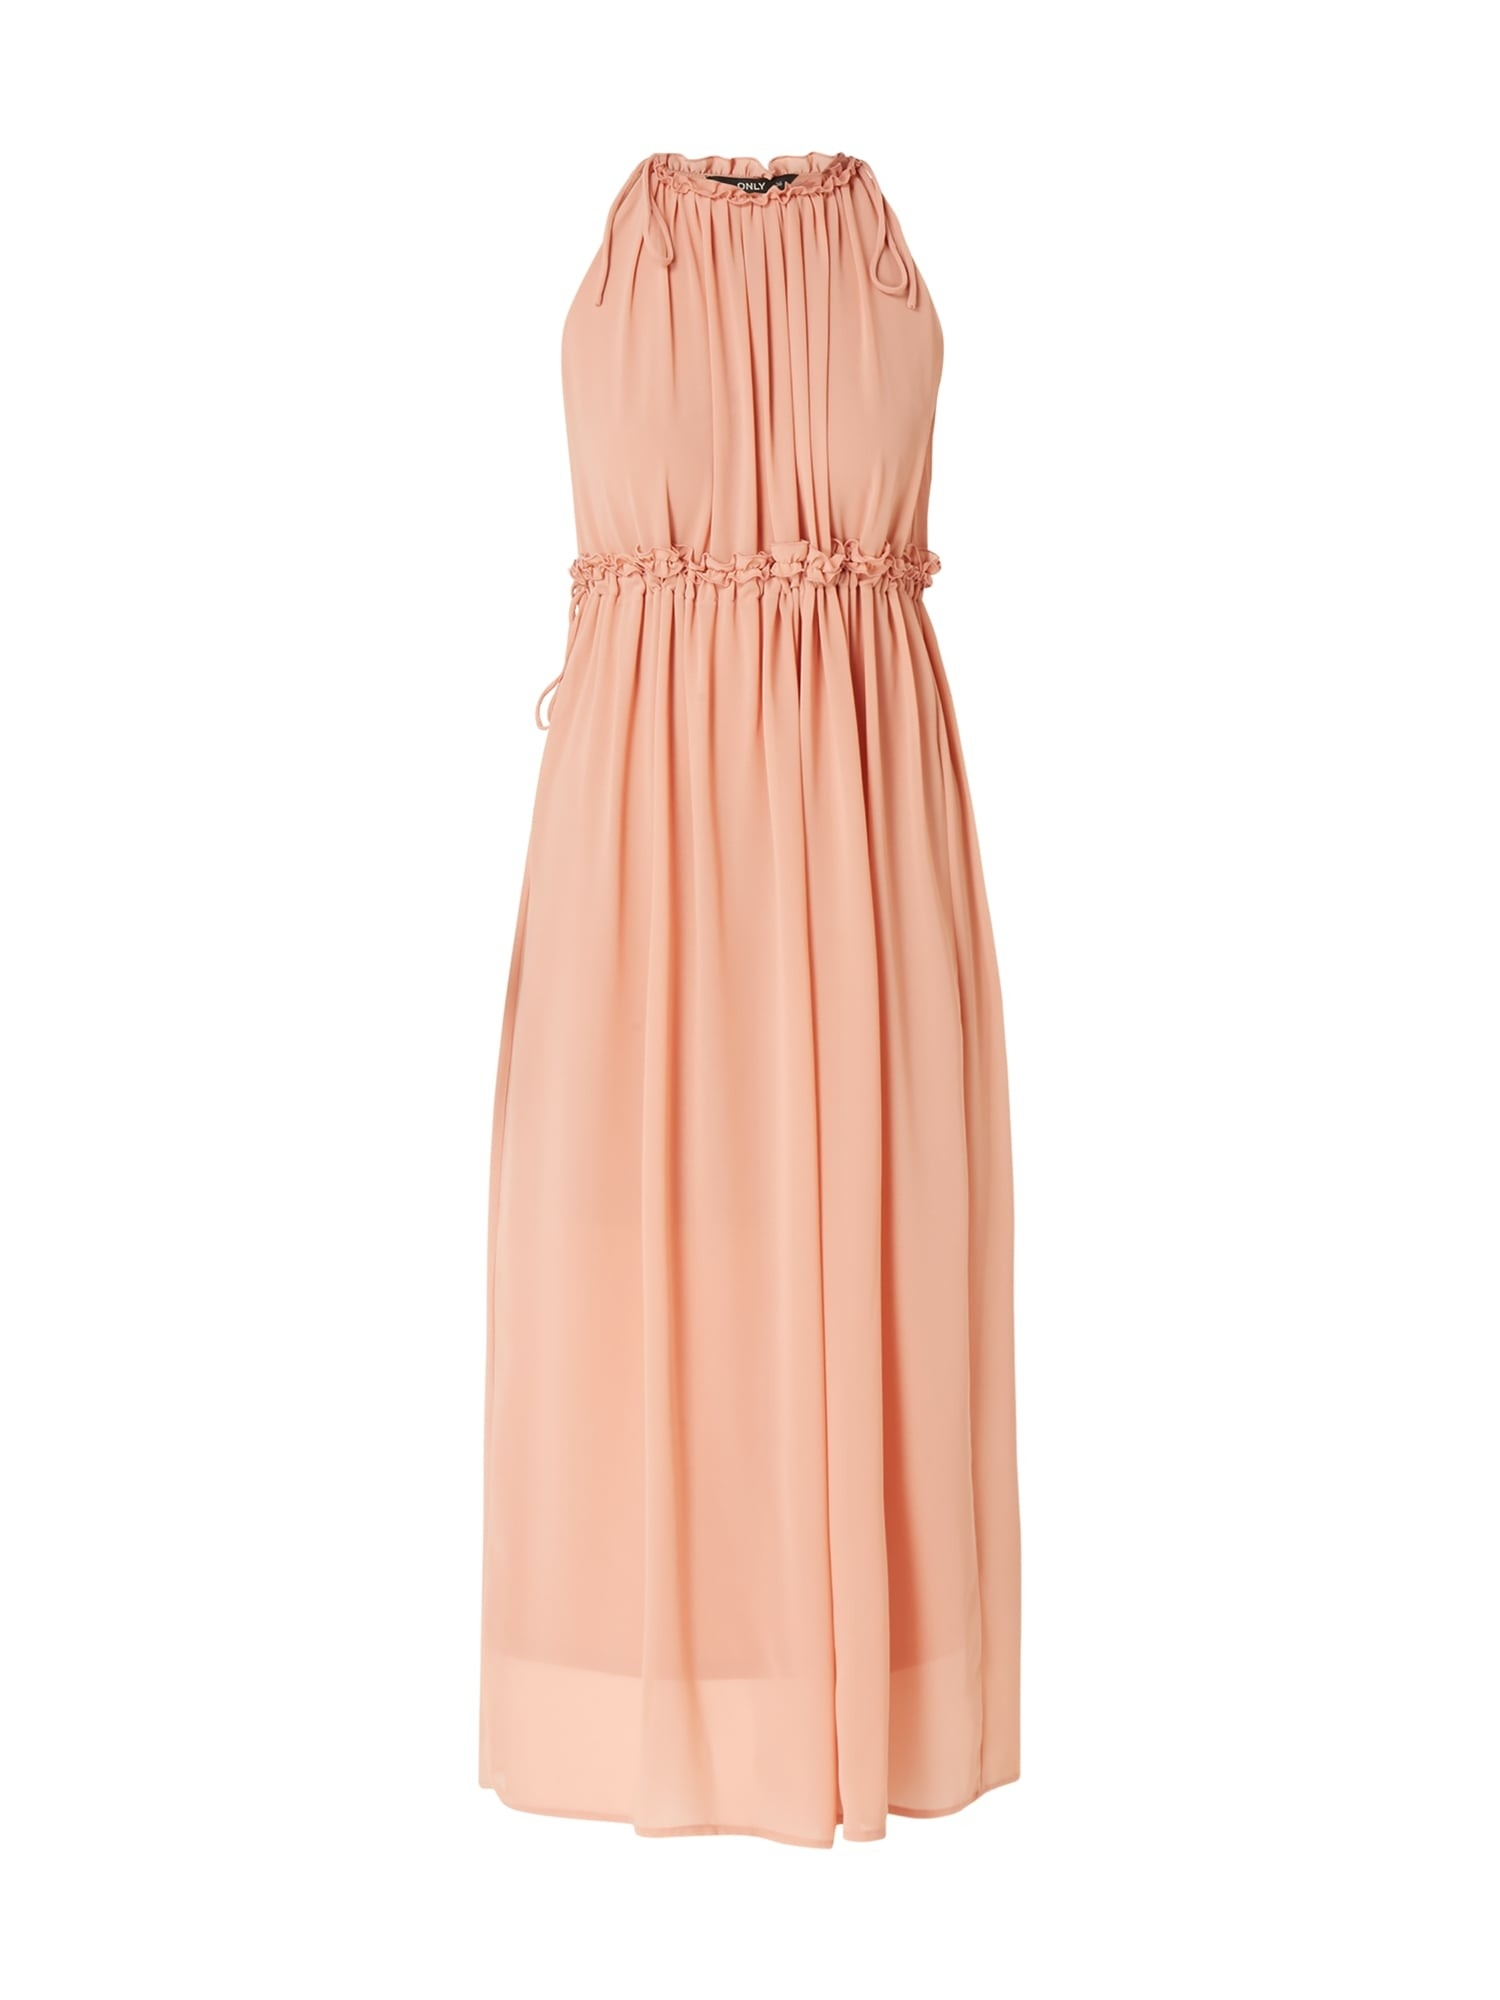 15 Cool Abendkleid Pink Lang Vertrieb Luxurius Abendkleid Pink Lang Boutique